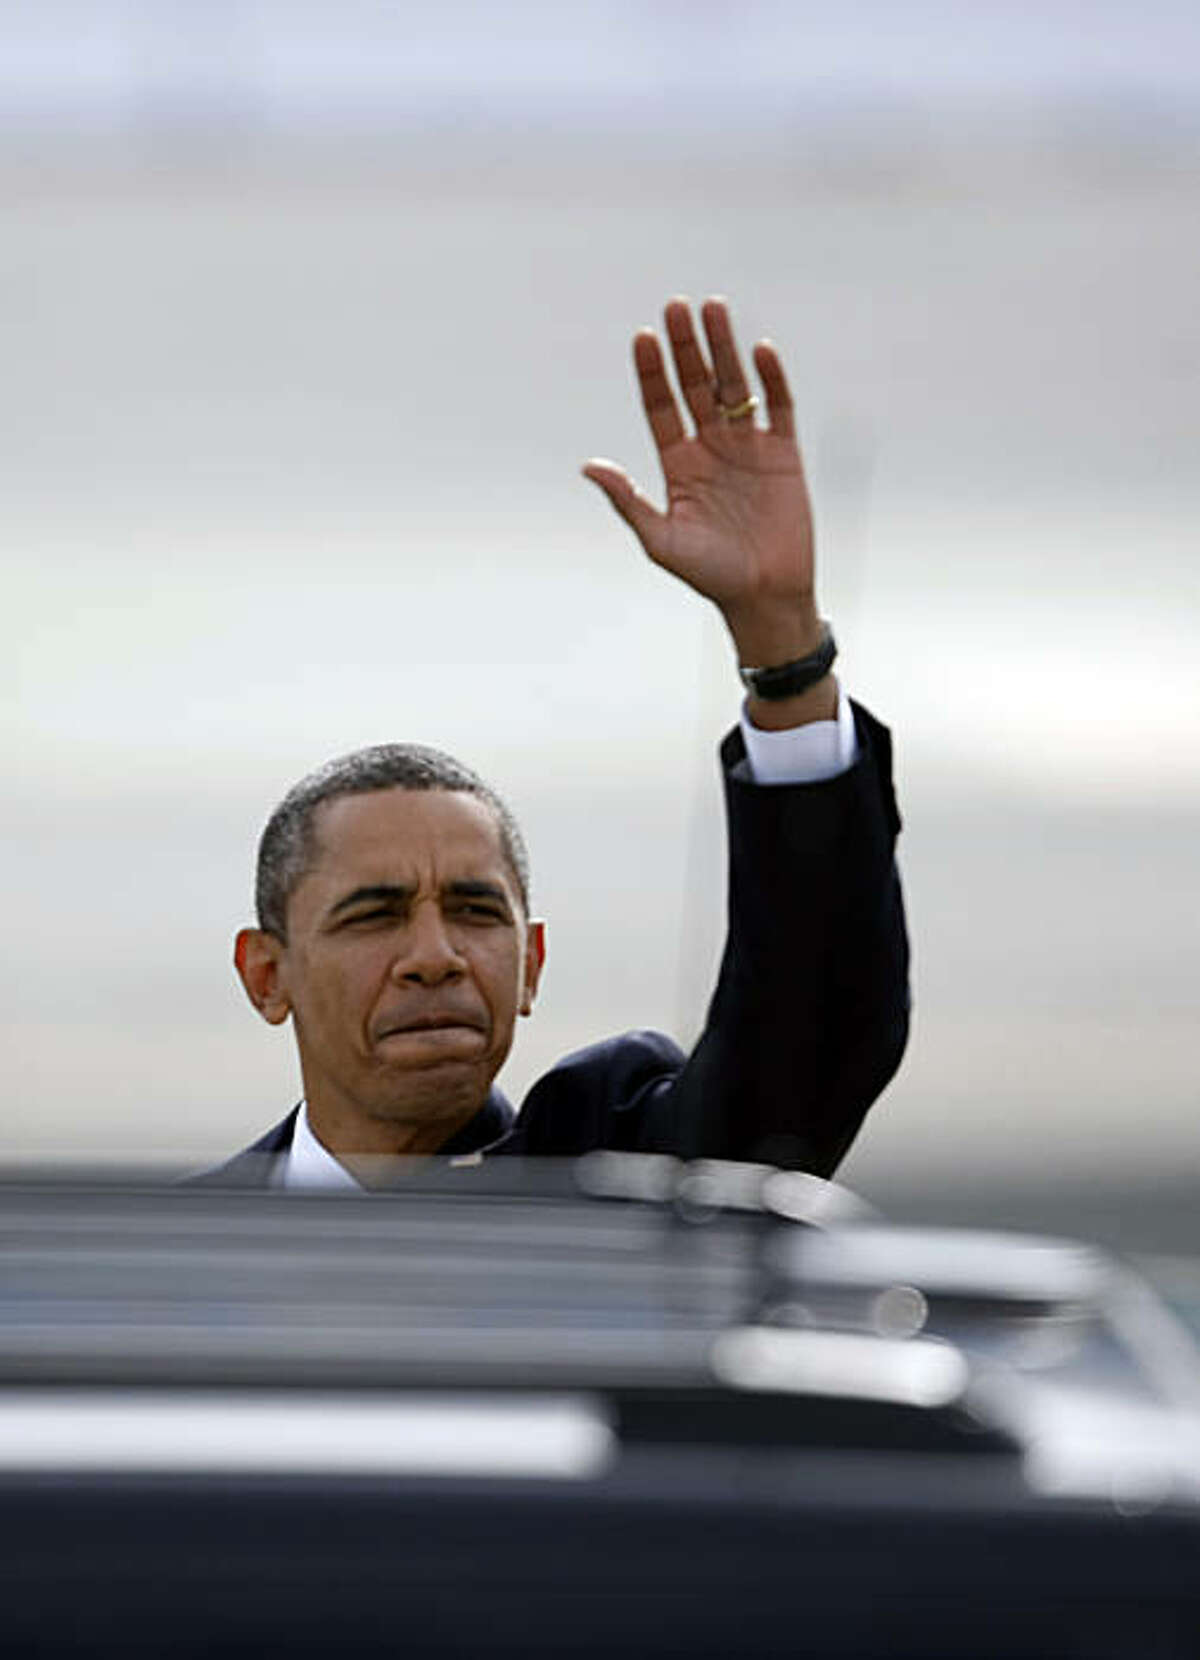 President Barack Obama arrives at San Francisco International Airport Wednesday, October 21, 2010, in San Francisco, Calif. Obama is campaigning to raise money for Democrats on a five-state and four-day trip.